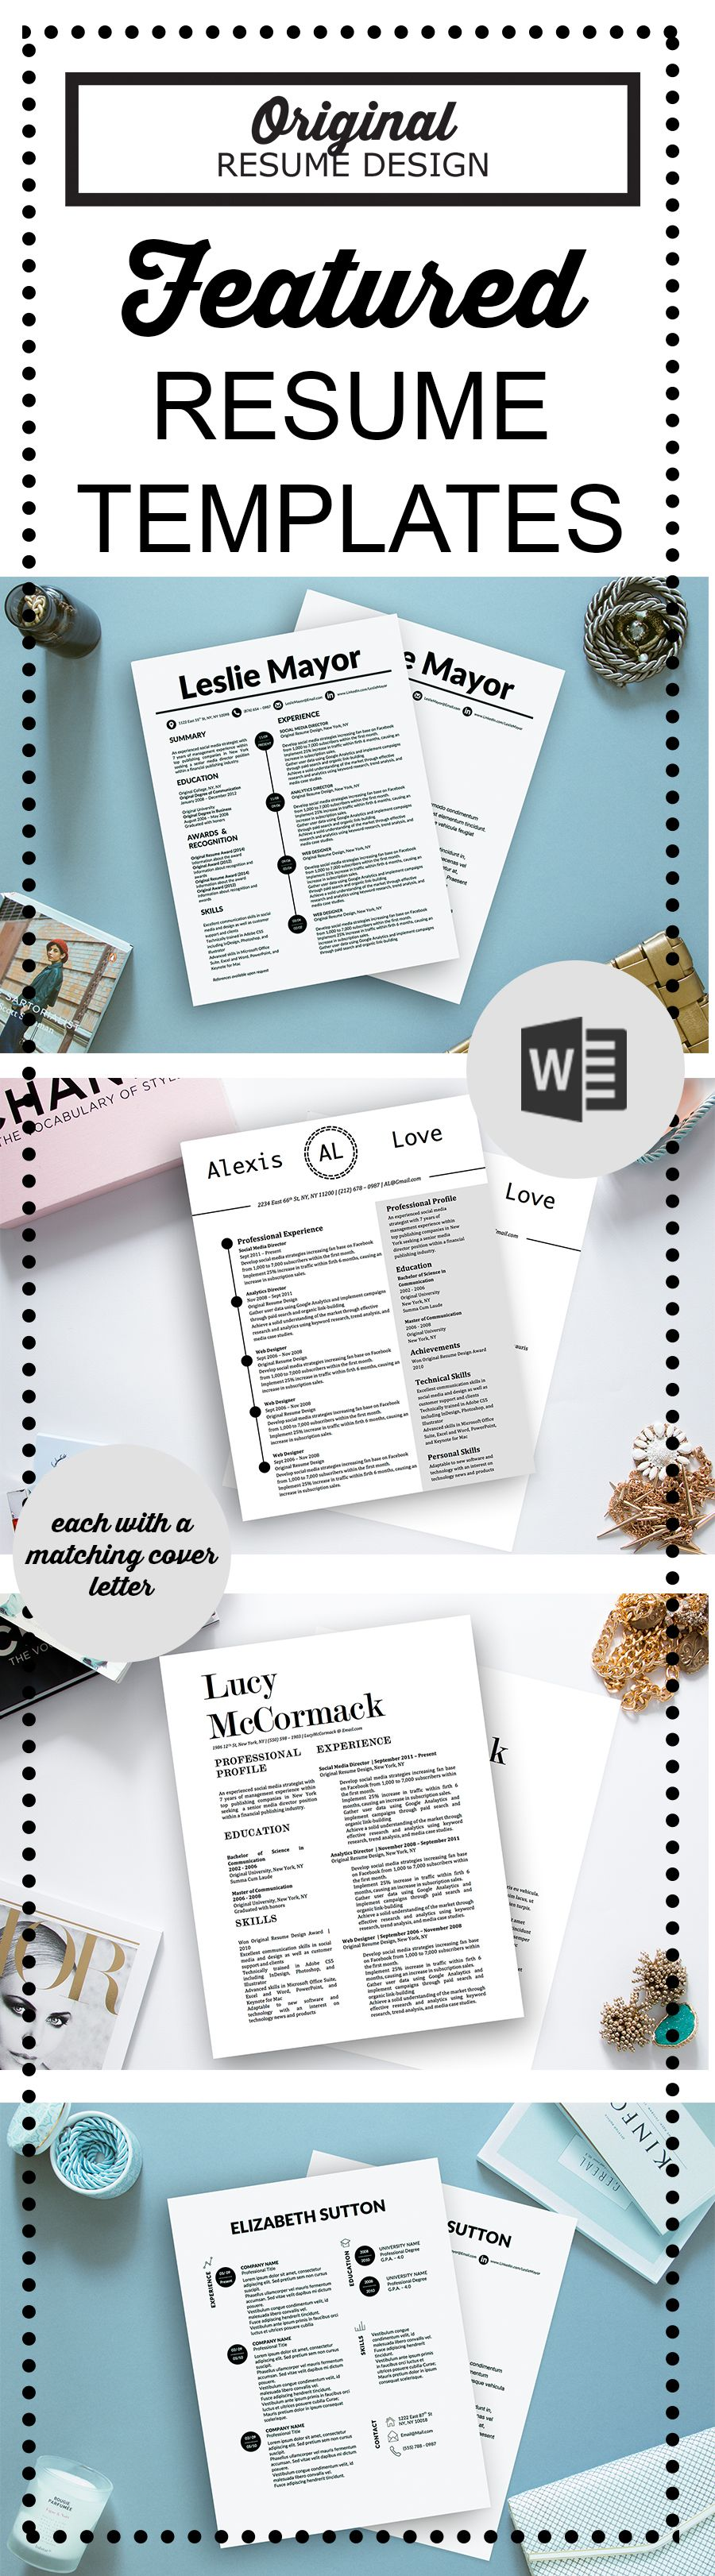 Featured resume templates for Microsoft Word by Original Resume ...